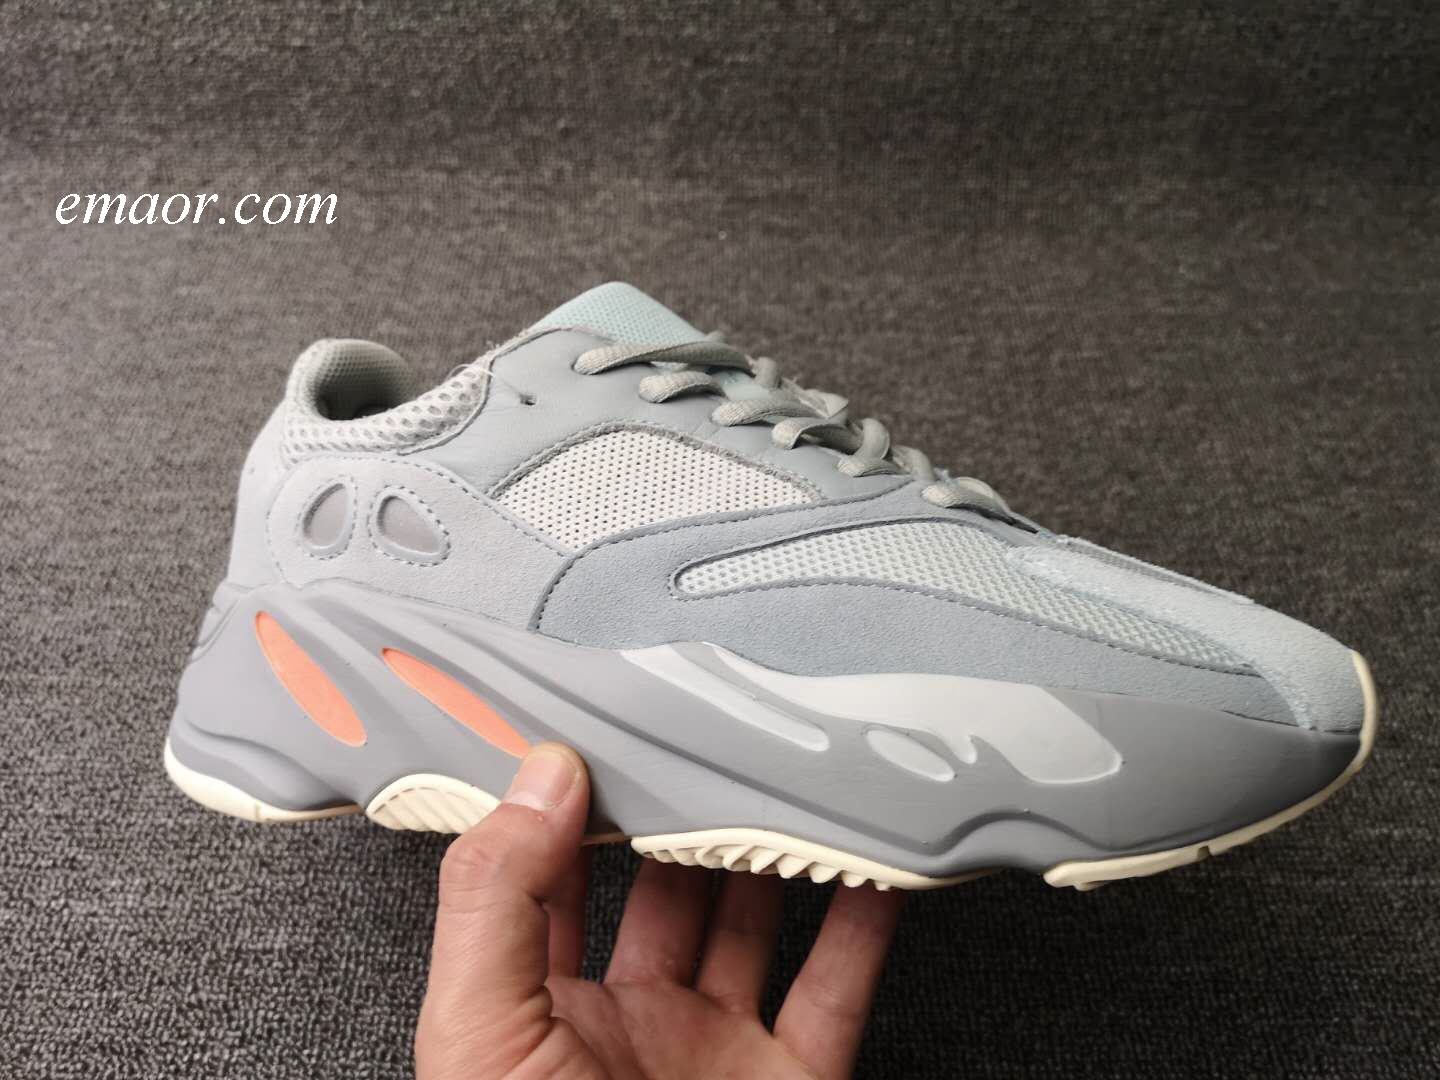 Yeezy Boost 700 Yeezi Air 700 Boost Outdoor Jogging Men's Hiking Shoes Lovers Sneakers Men's Sport Shoes Brand Outdoor Athletic Women's Hiking Shoes Yeezy Boost 700